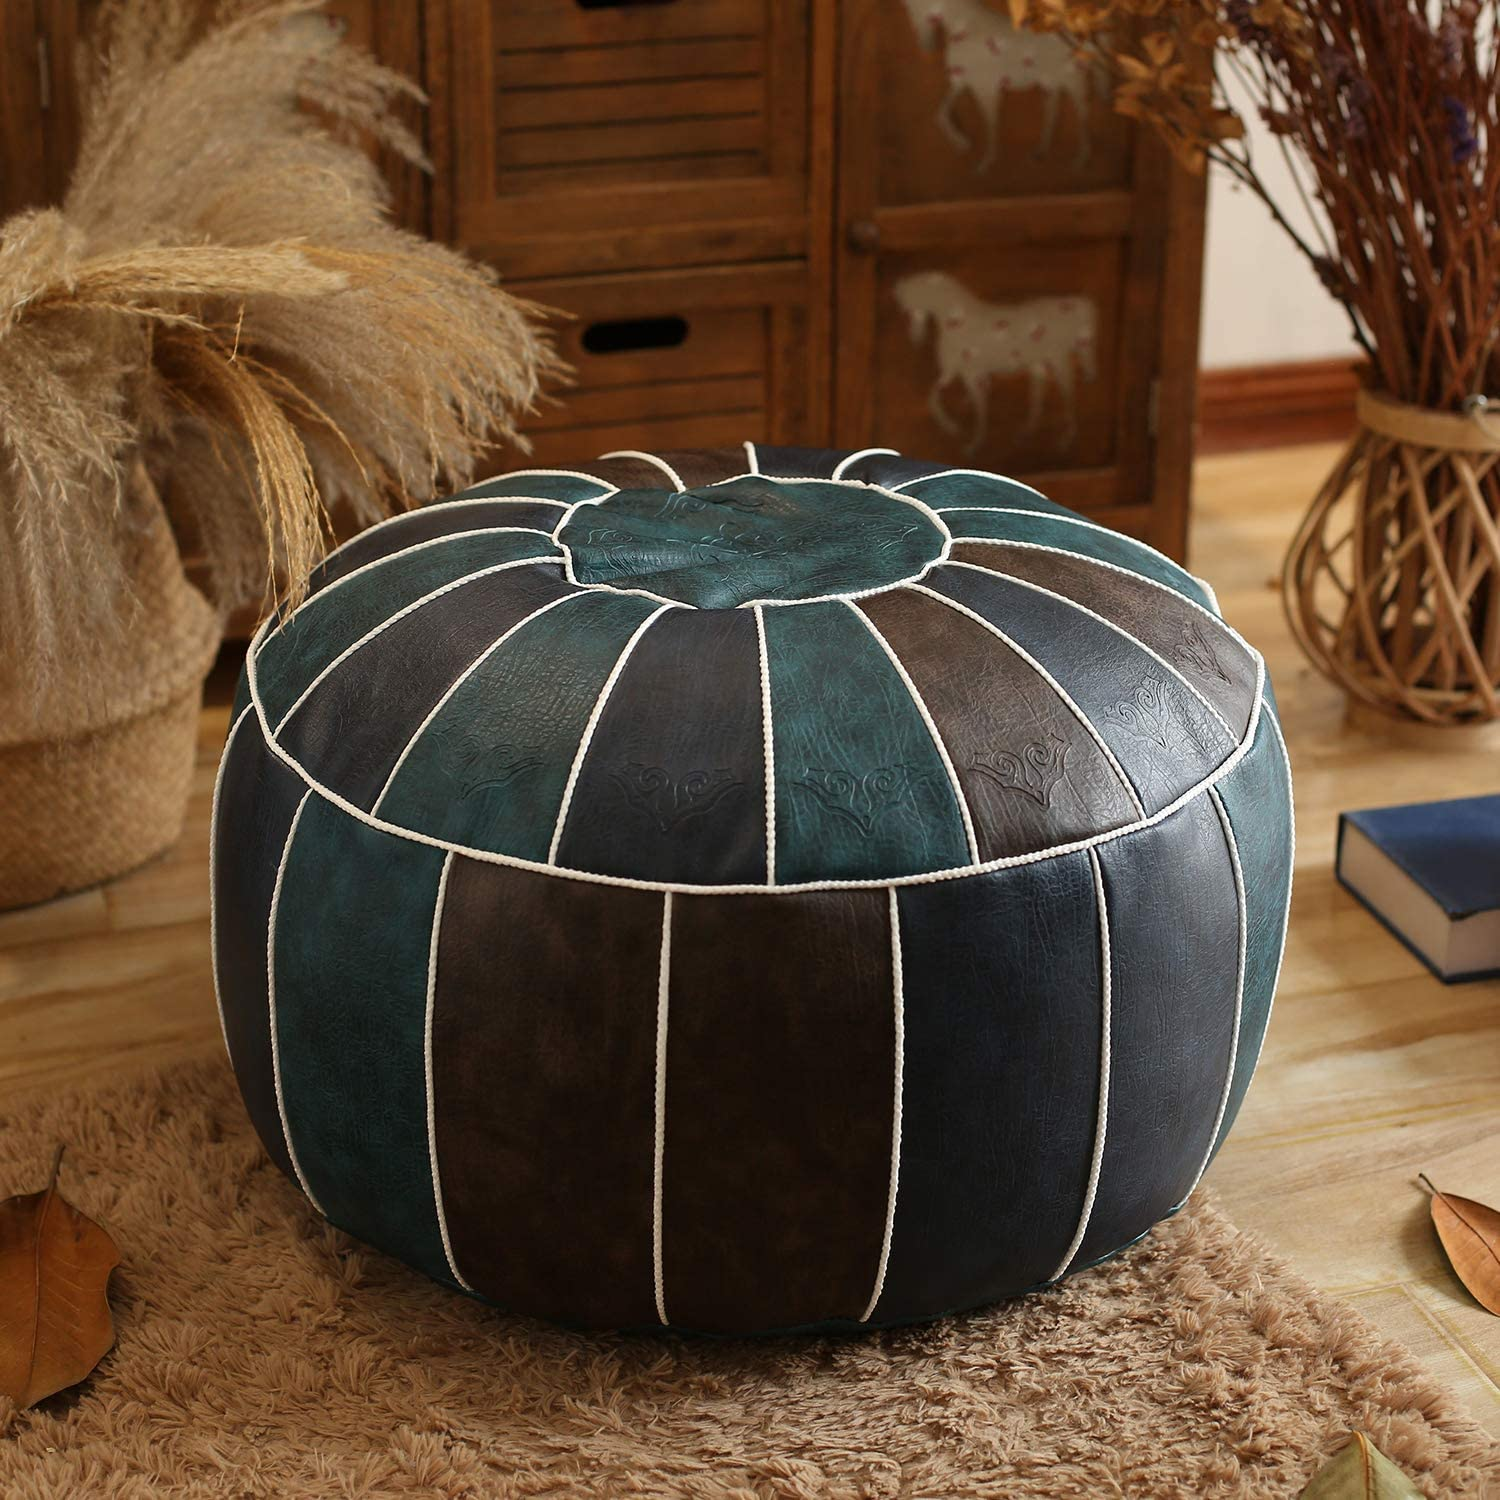 Leather Moroccan Pouf,Handmade Stuffed Embroidered Ottoman Footstool Home Decor Round Floor Cushion for Living Room Cafe-Blue 60x60x30cm(24x24x12inch)